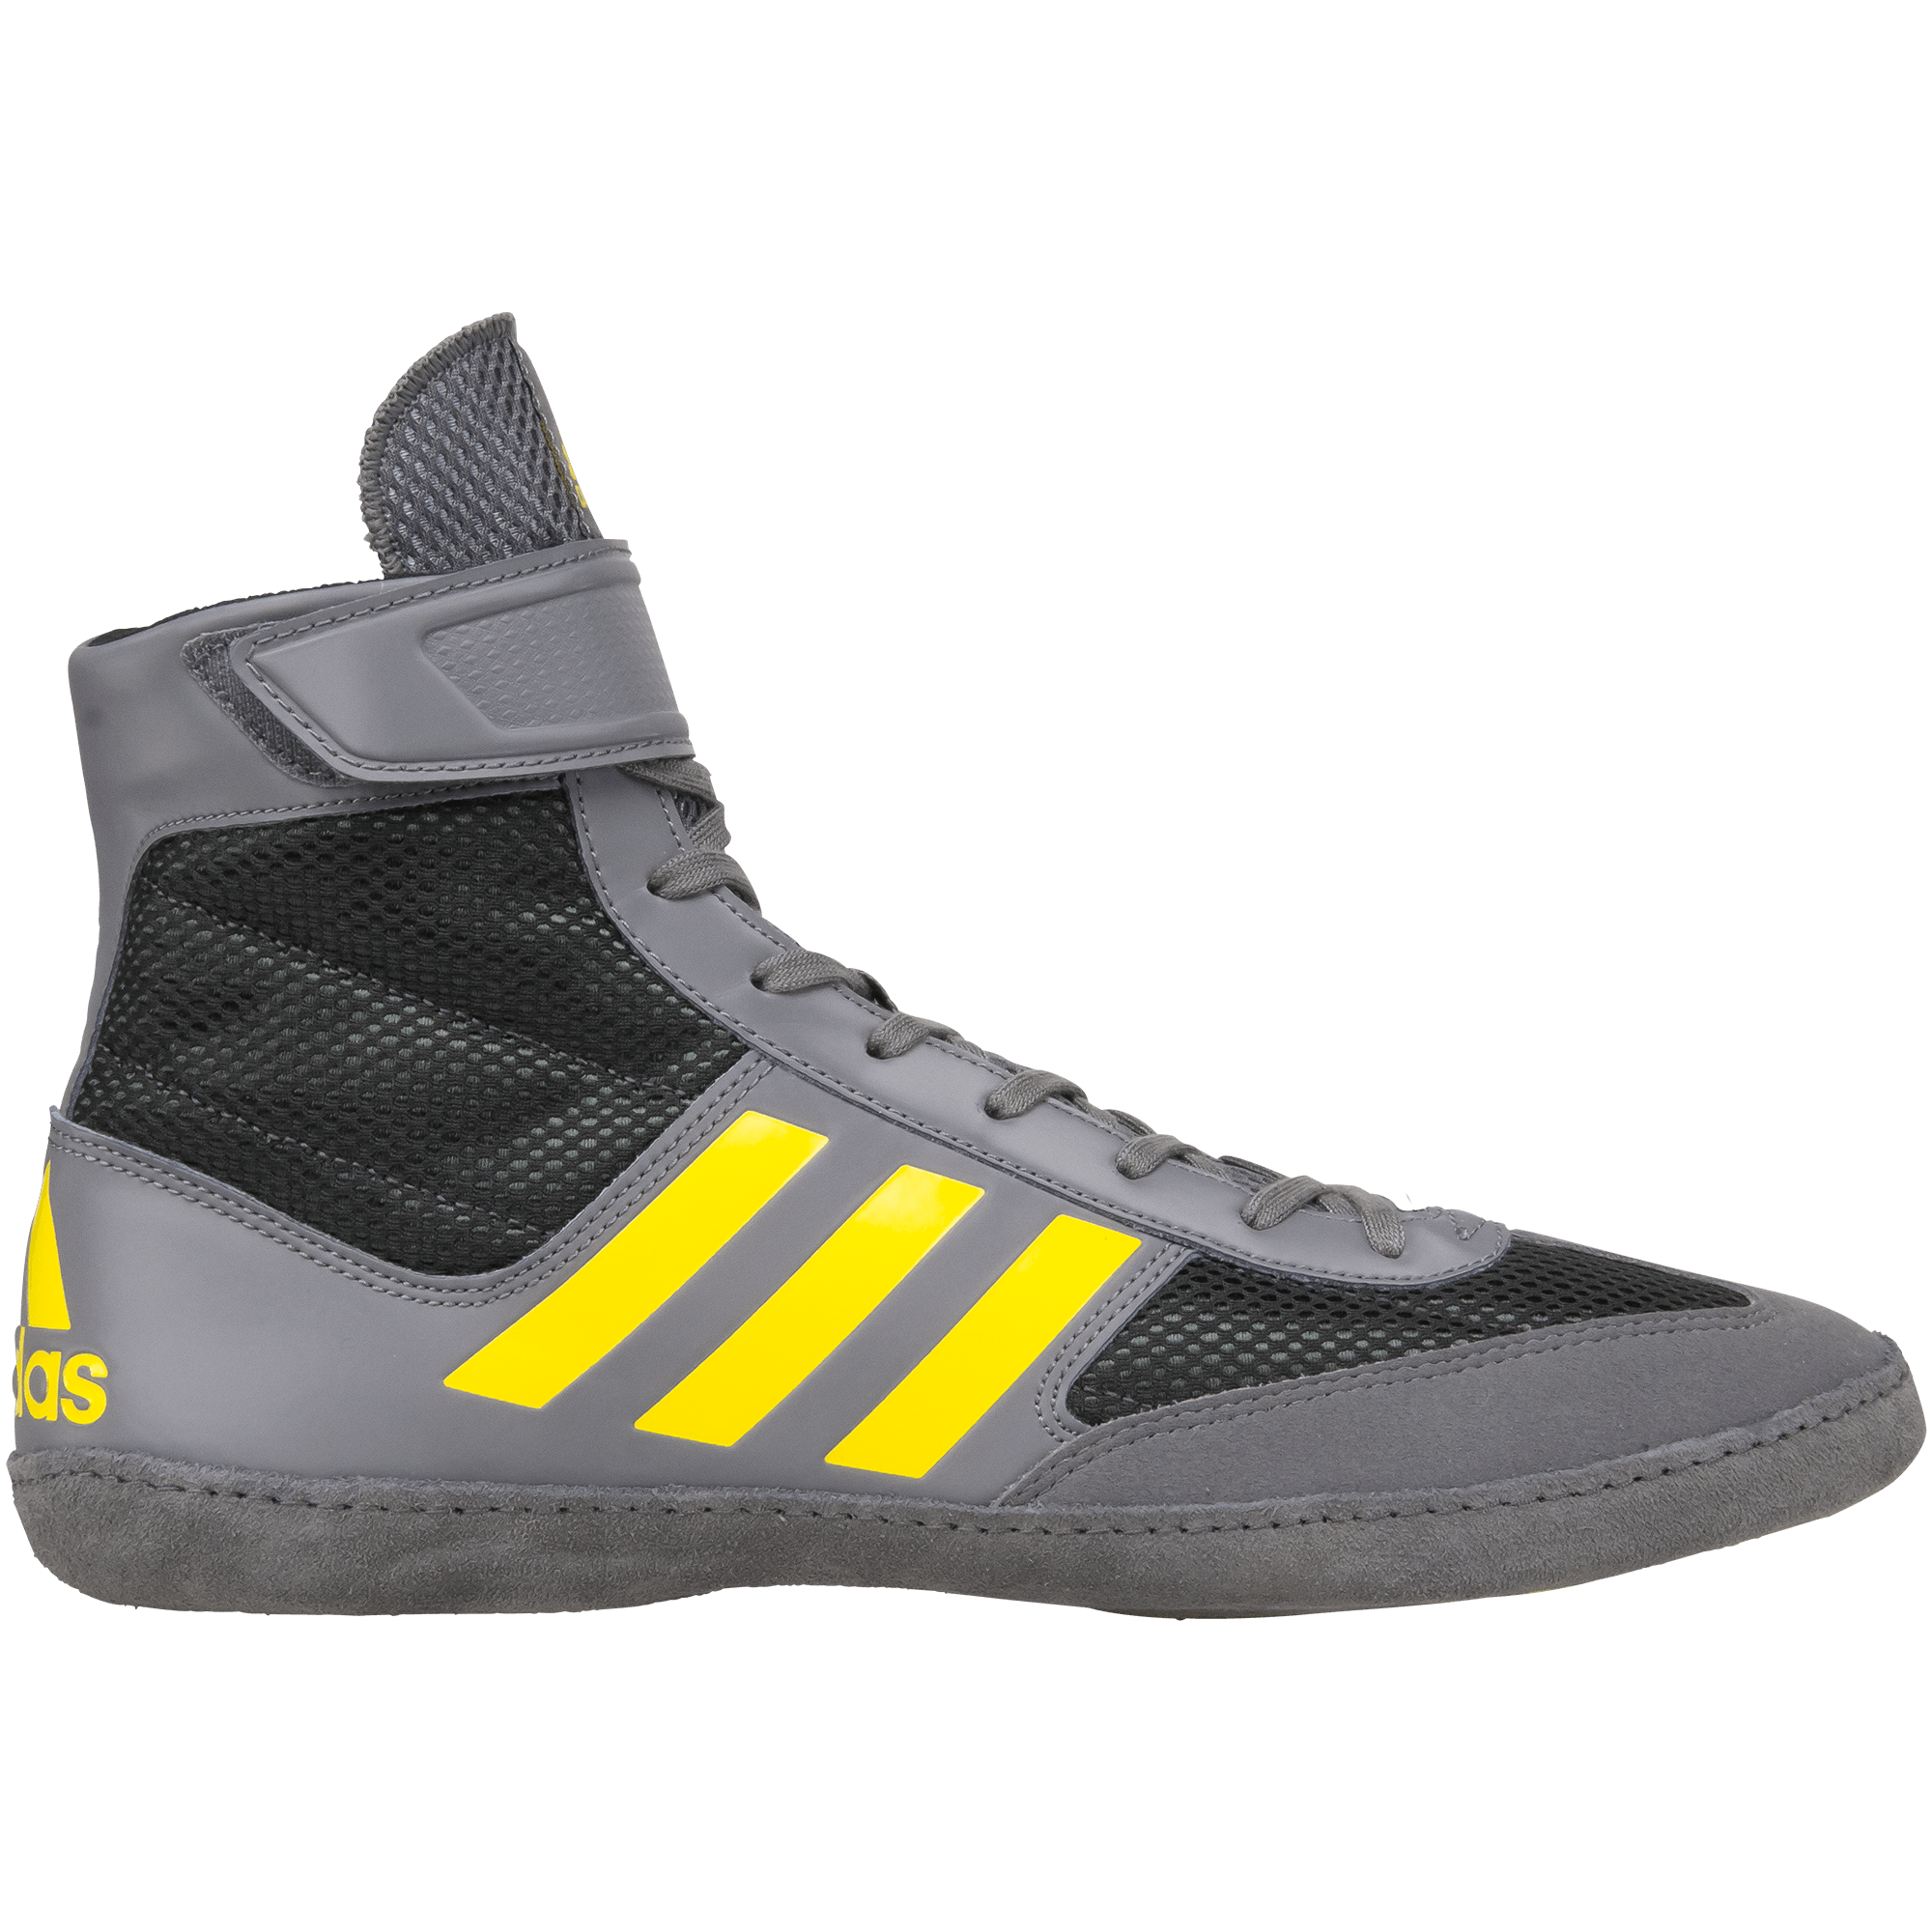 best website ece7f 04d72 Adidas Combat Speed 5